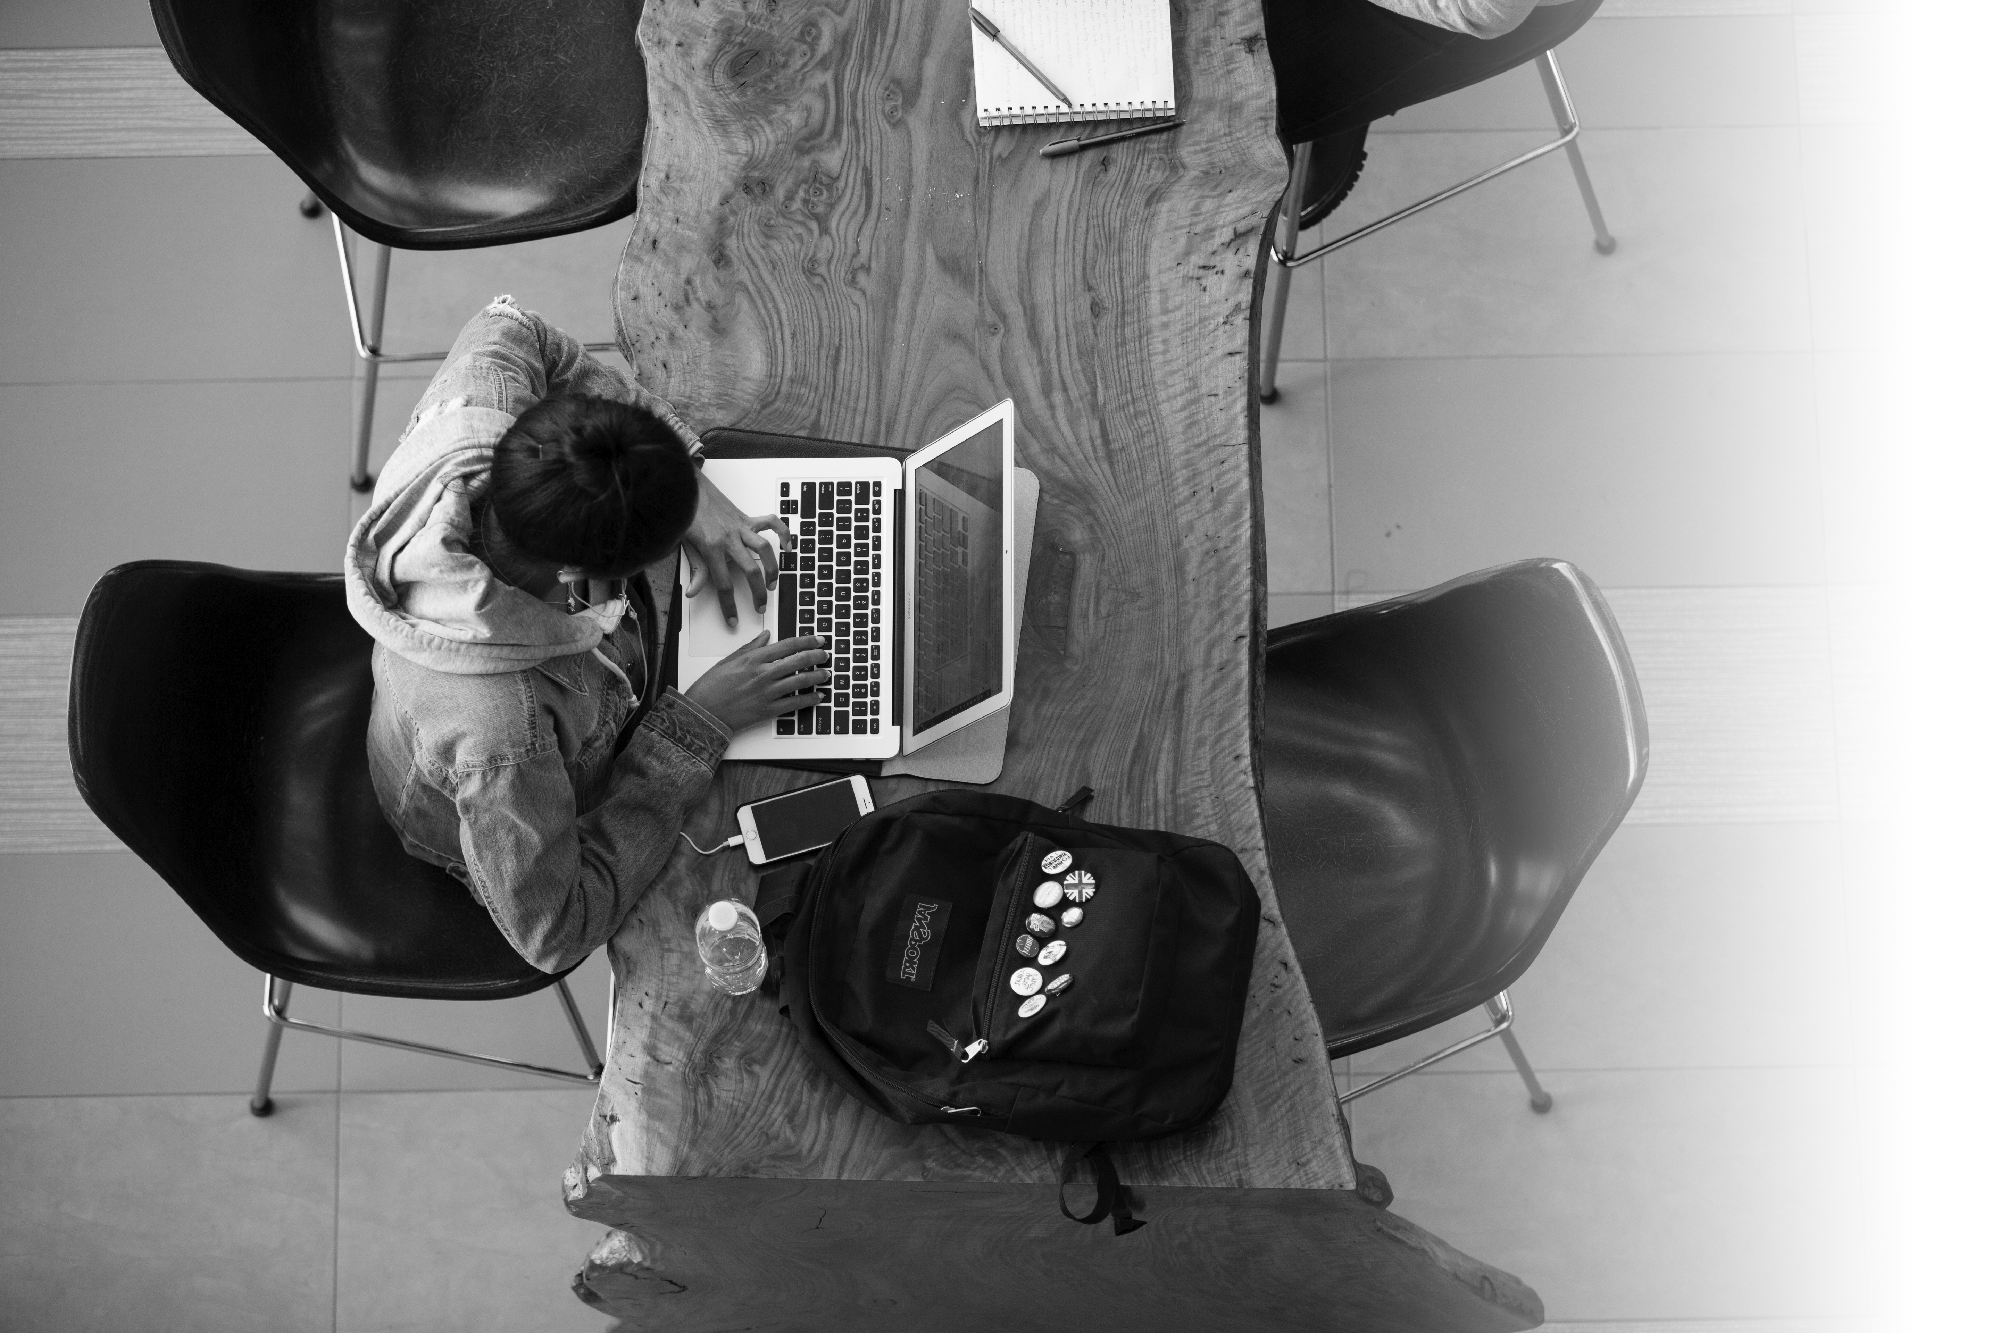 A student studying on a laptop captured from above.